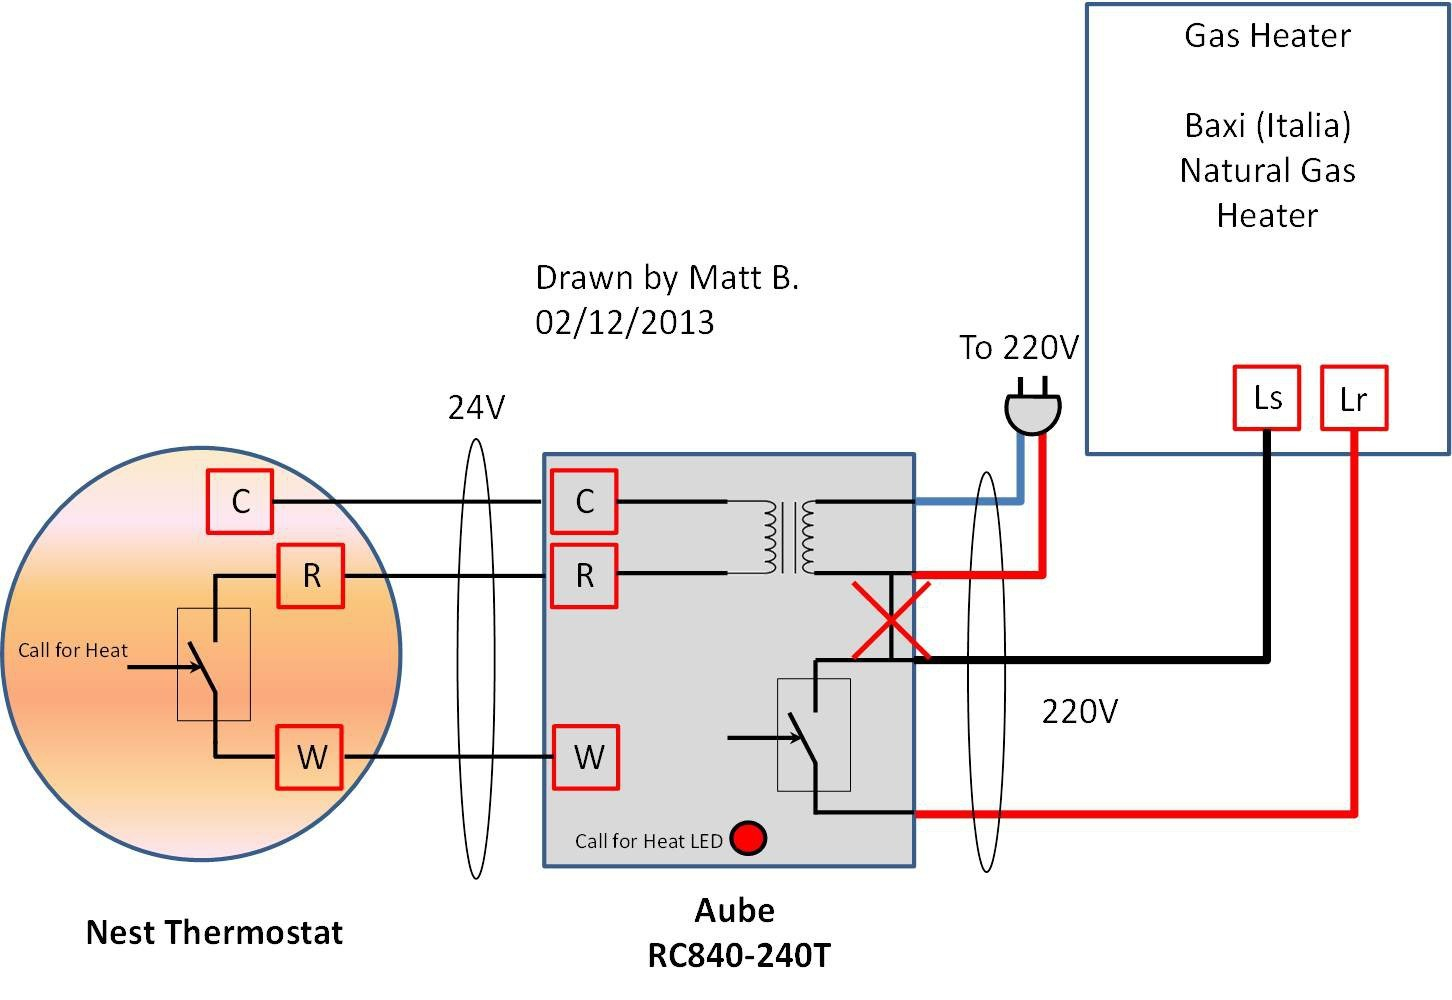 Wiring Diagram For Nest Thermostat Uk | Wiring Diagram - Nest V3 Wiring Diagram